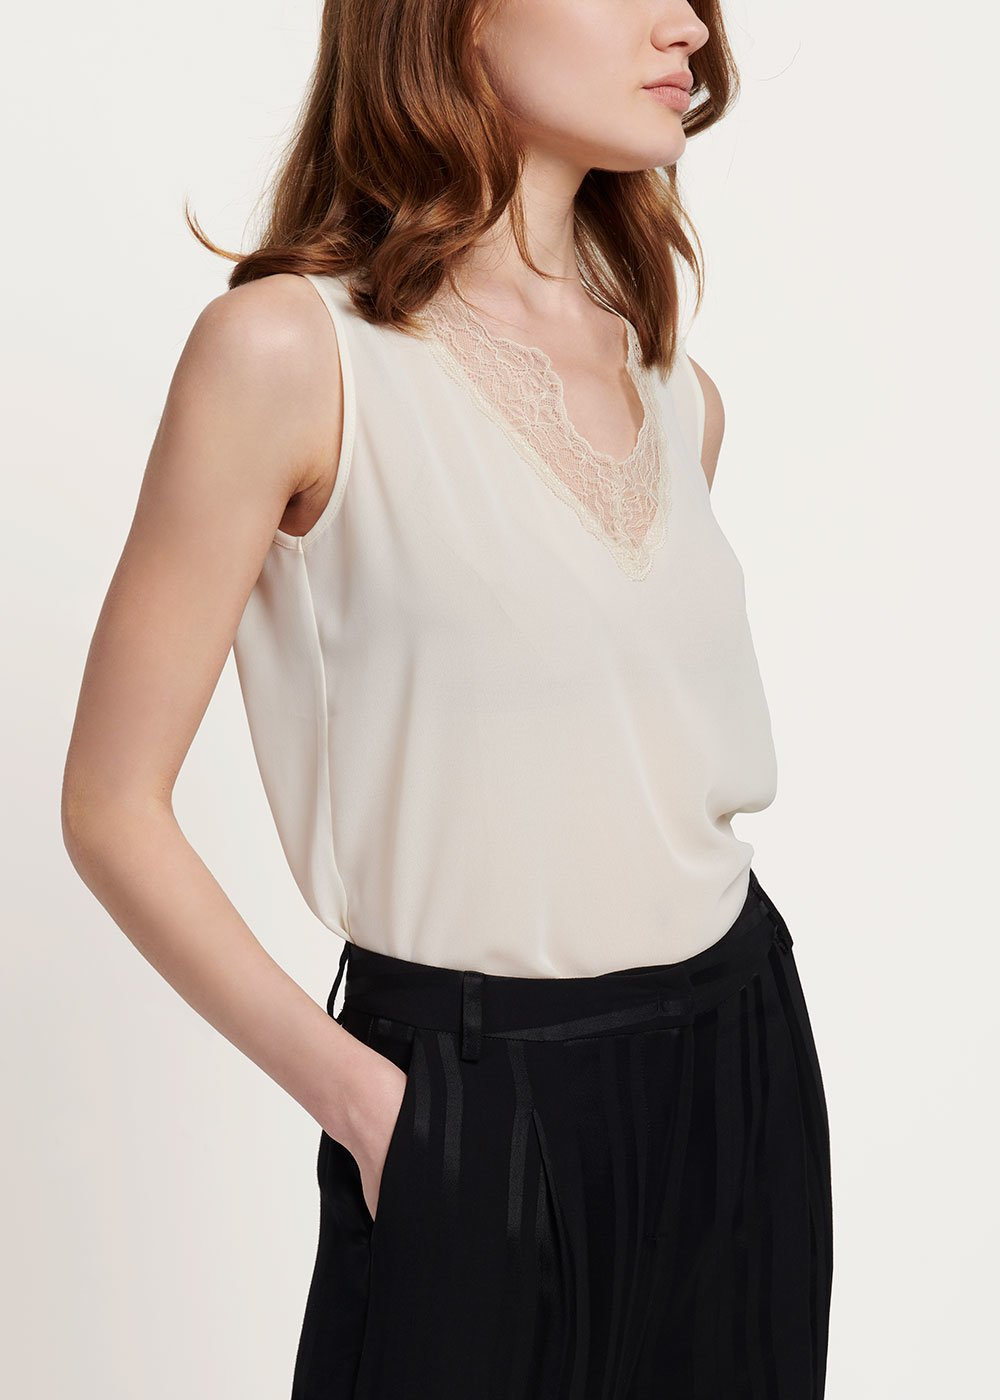 Tonic top with lace on the neckline - Ginger - Woman